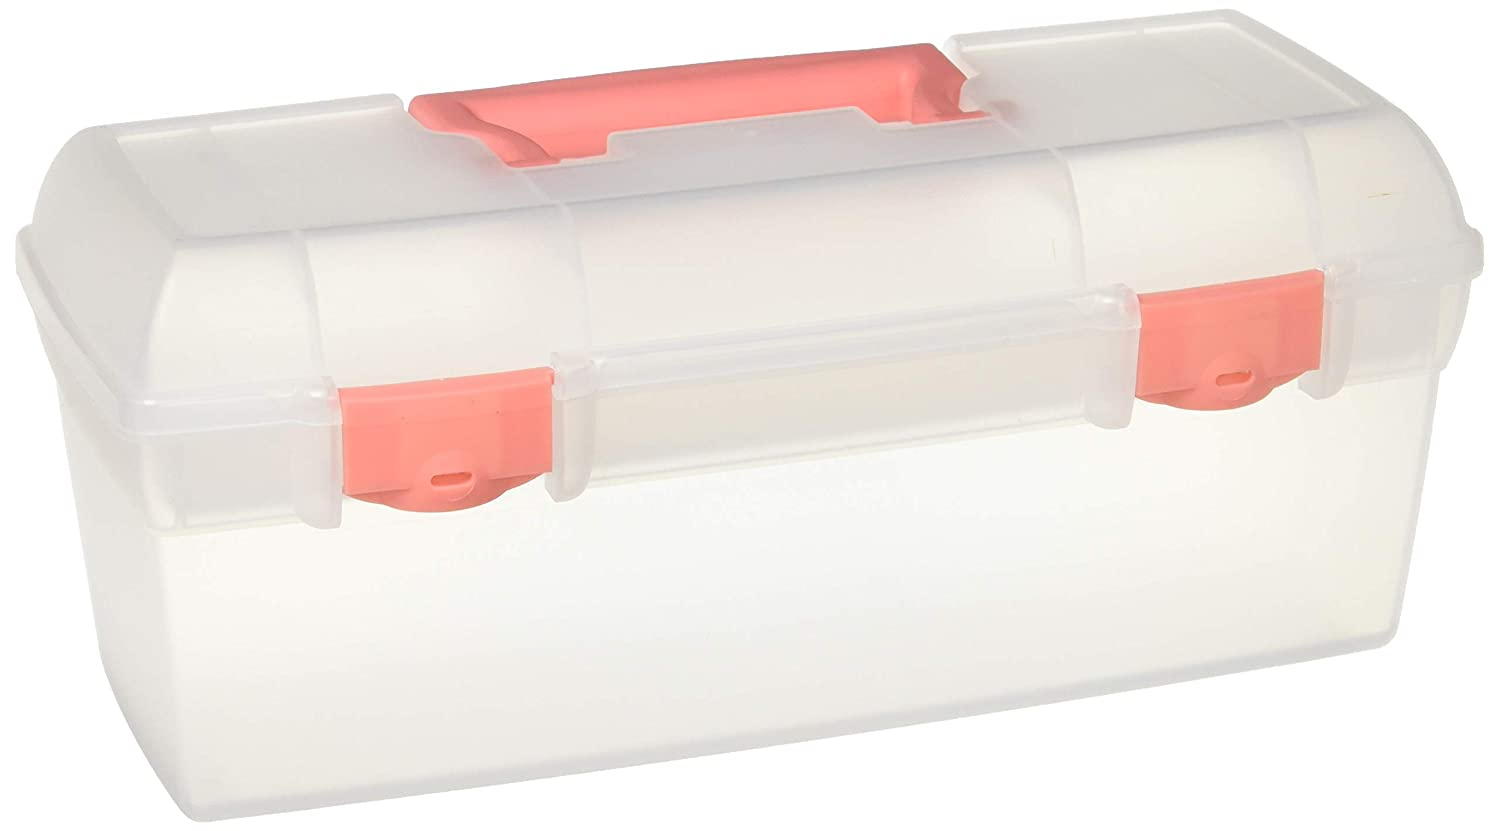 ArtBin Essentials Lift-Out Tray, Art and Craft Storage Box- Trans. W/Coral Latches & Handle, 6936AG Flambeau Inc.